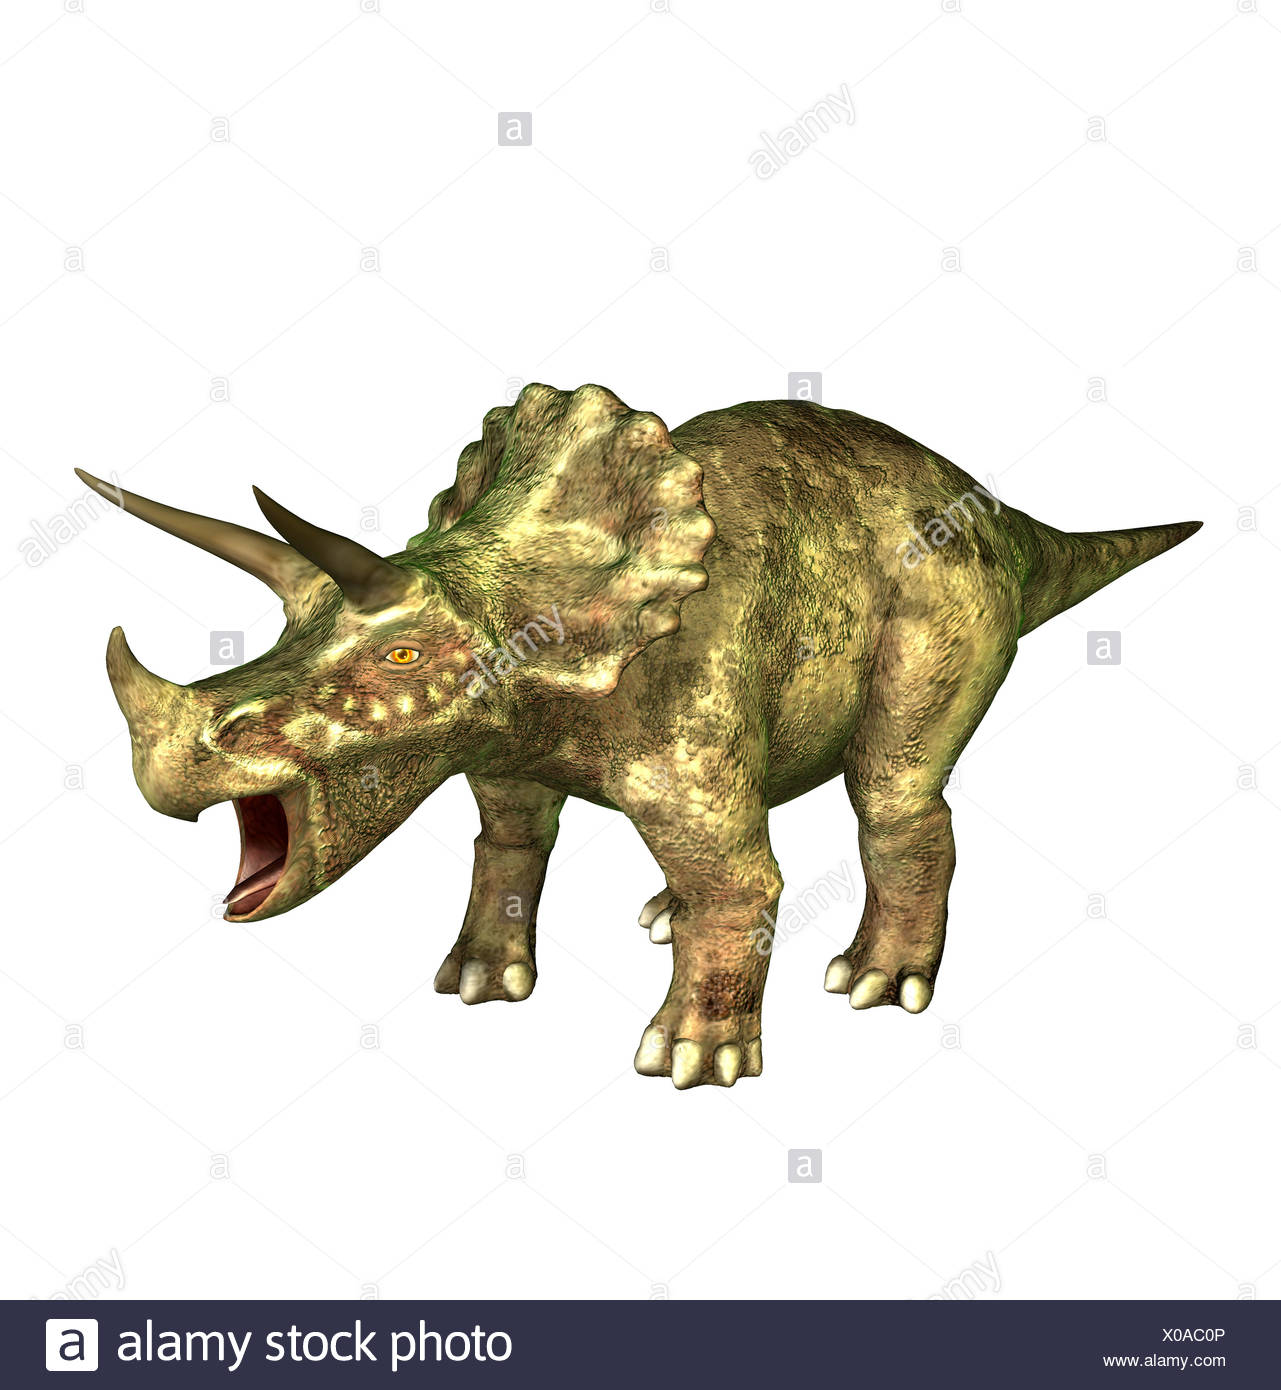 The Triceratops is called three-horn and about 9 m long and in the Cretaceous period occurred. The Triceratops is one of theStock Photo